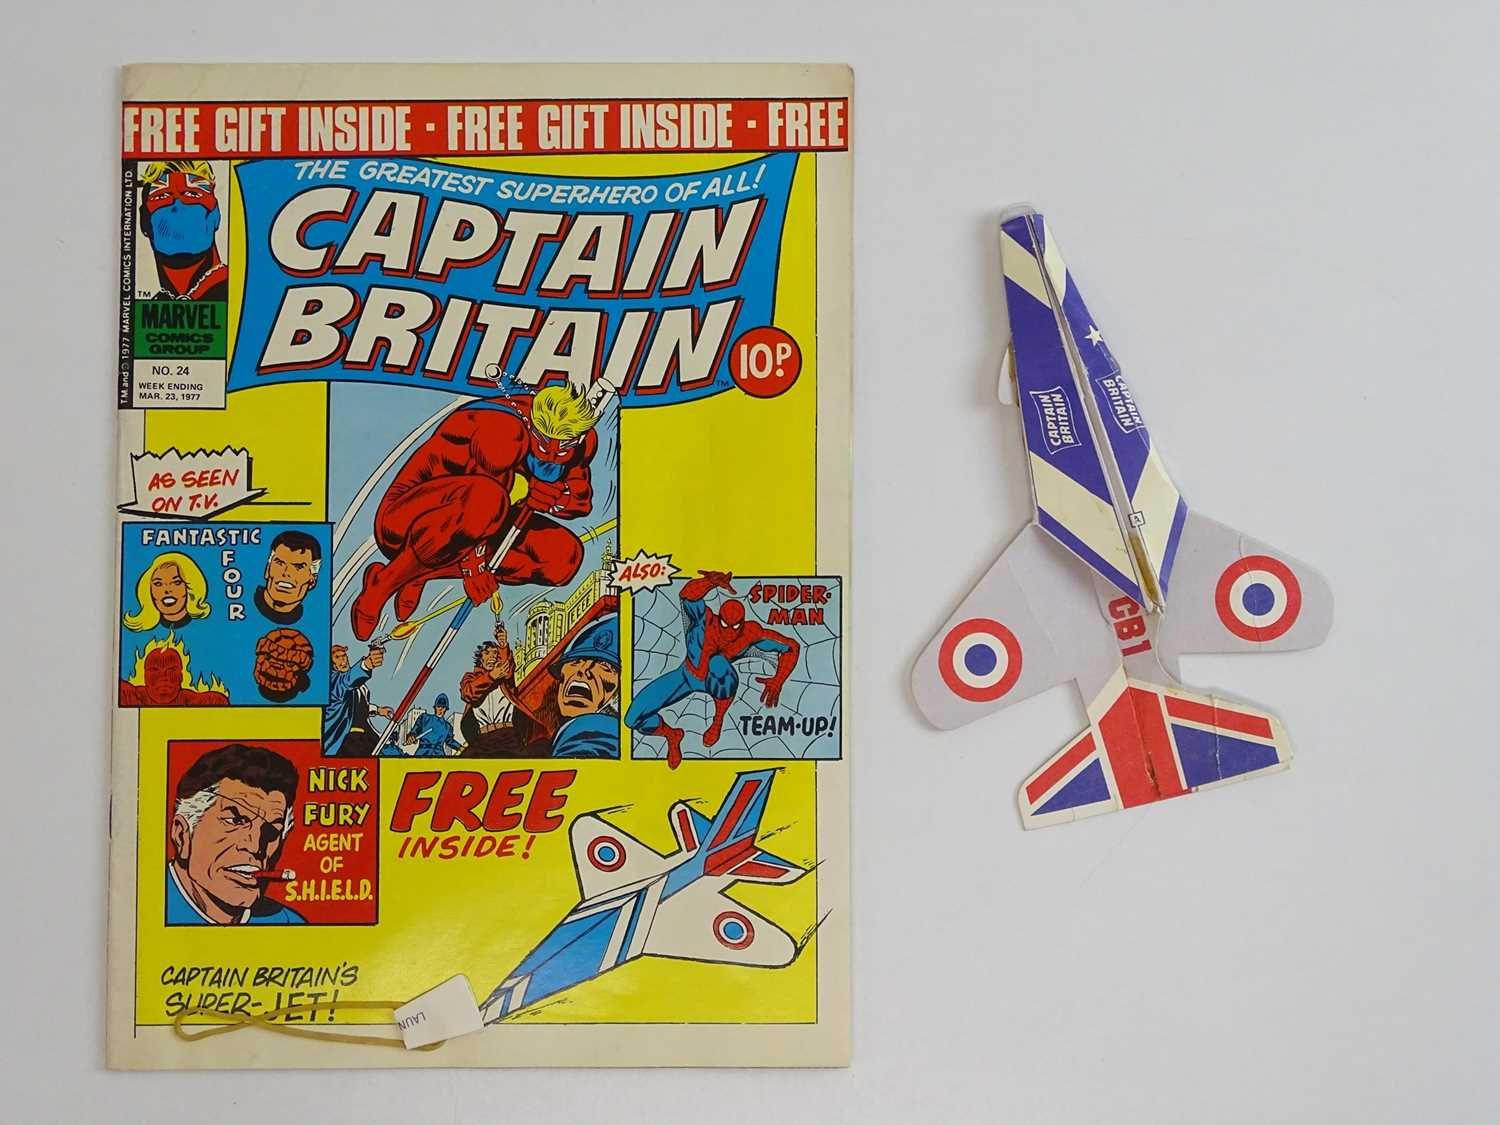 CAPTAIN BRITAIN #1 to 39 - (39 in Lot) - (1976/77 - BRITISH MARVEL) - Complete 39 issue run from # - Image 11 of 11